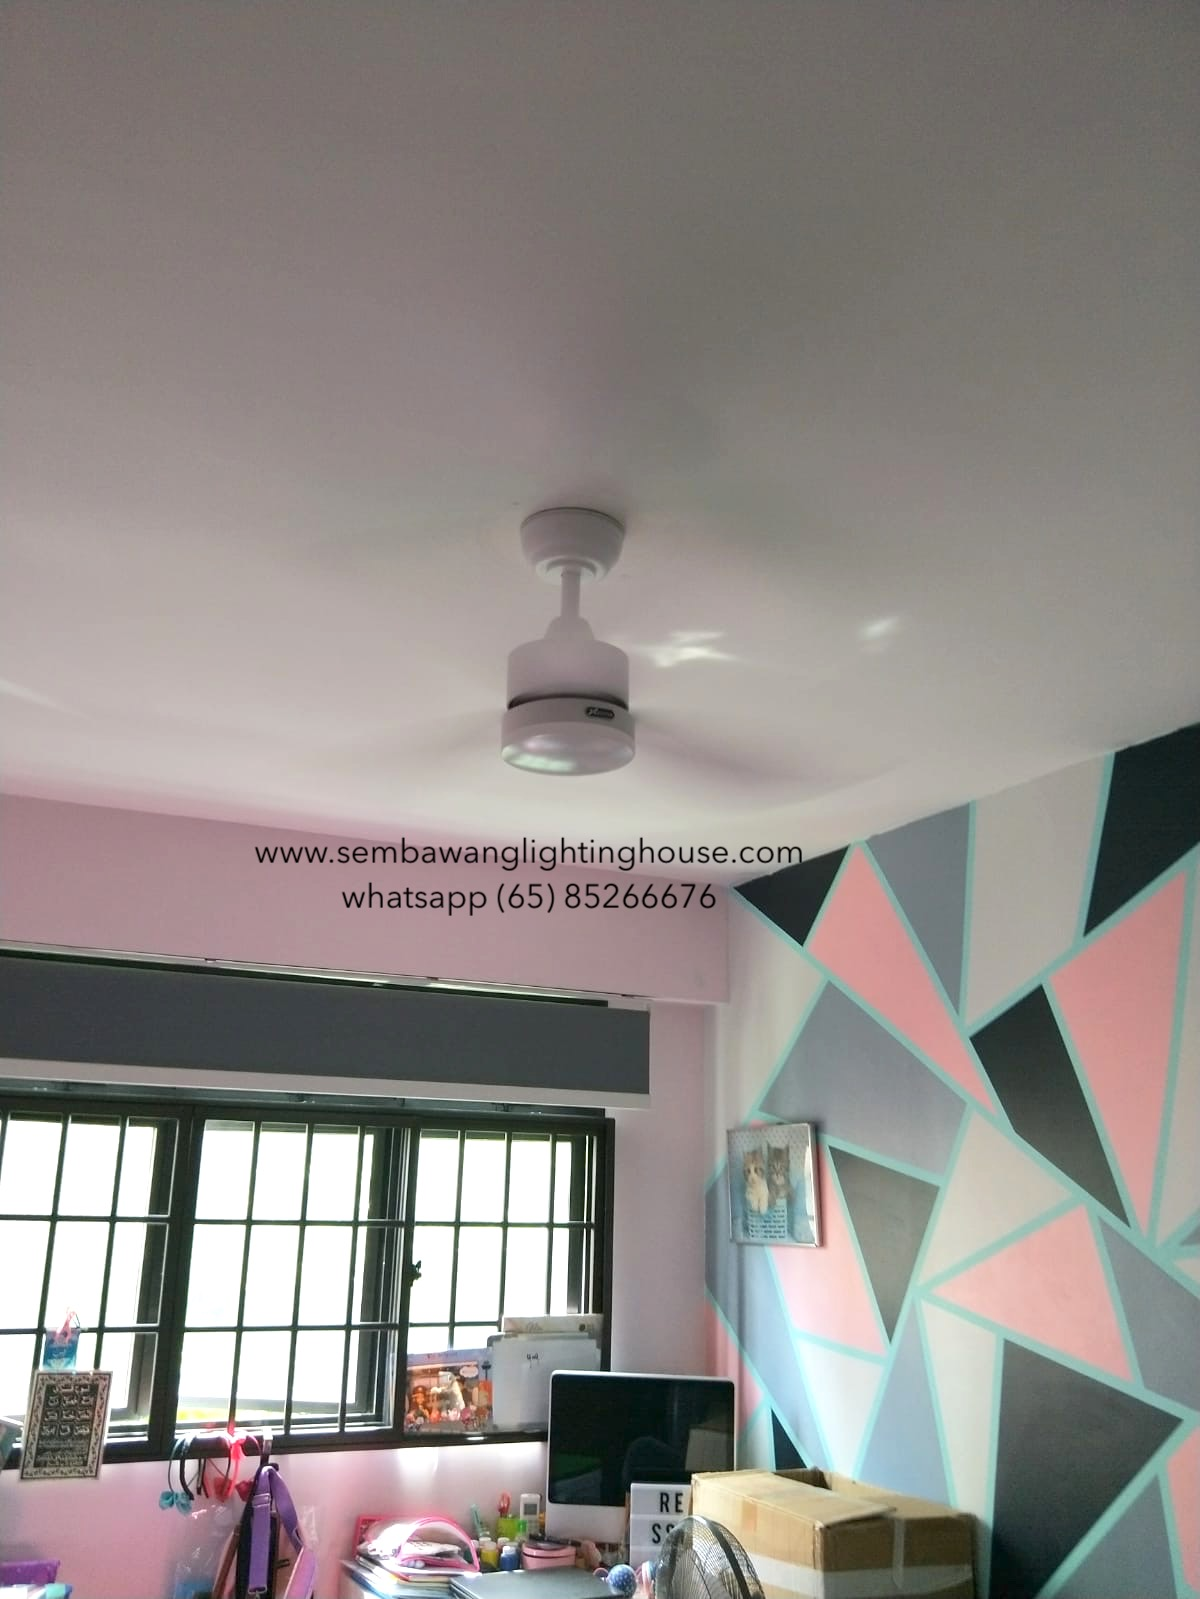 bestar-razor-white-ceiling-fan-sembawang-lighting-house-13.jpg